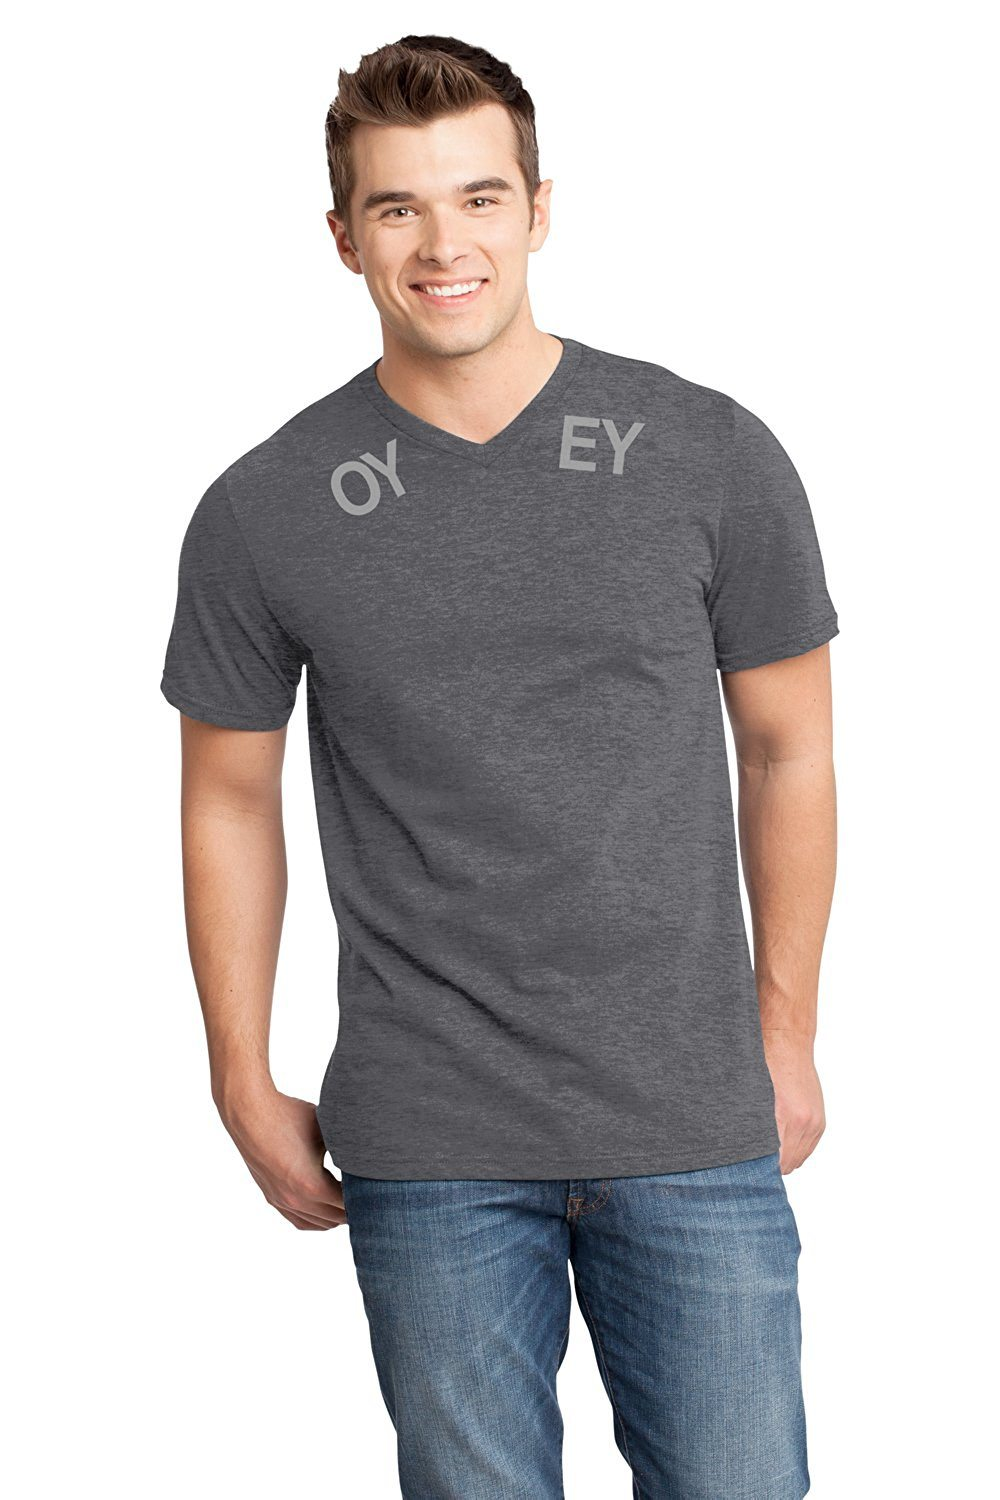 """Oy Vey"" Mens V-Neck"